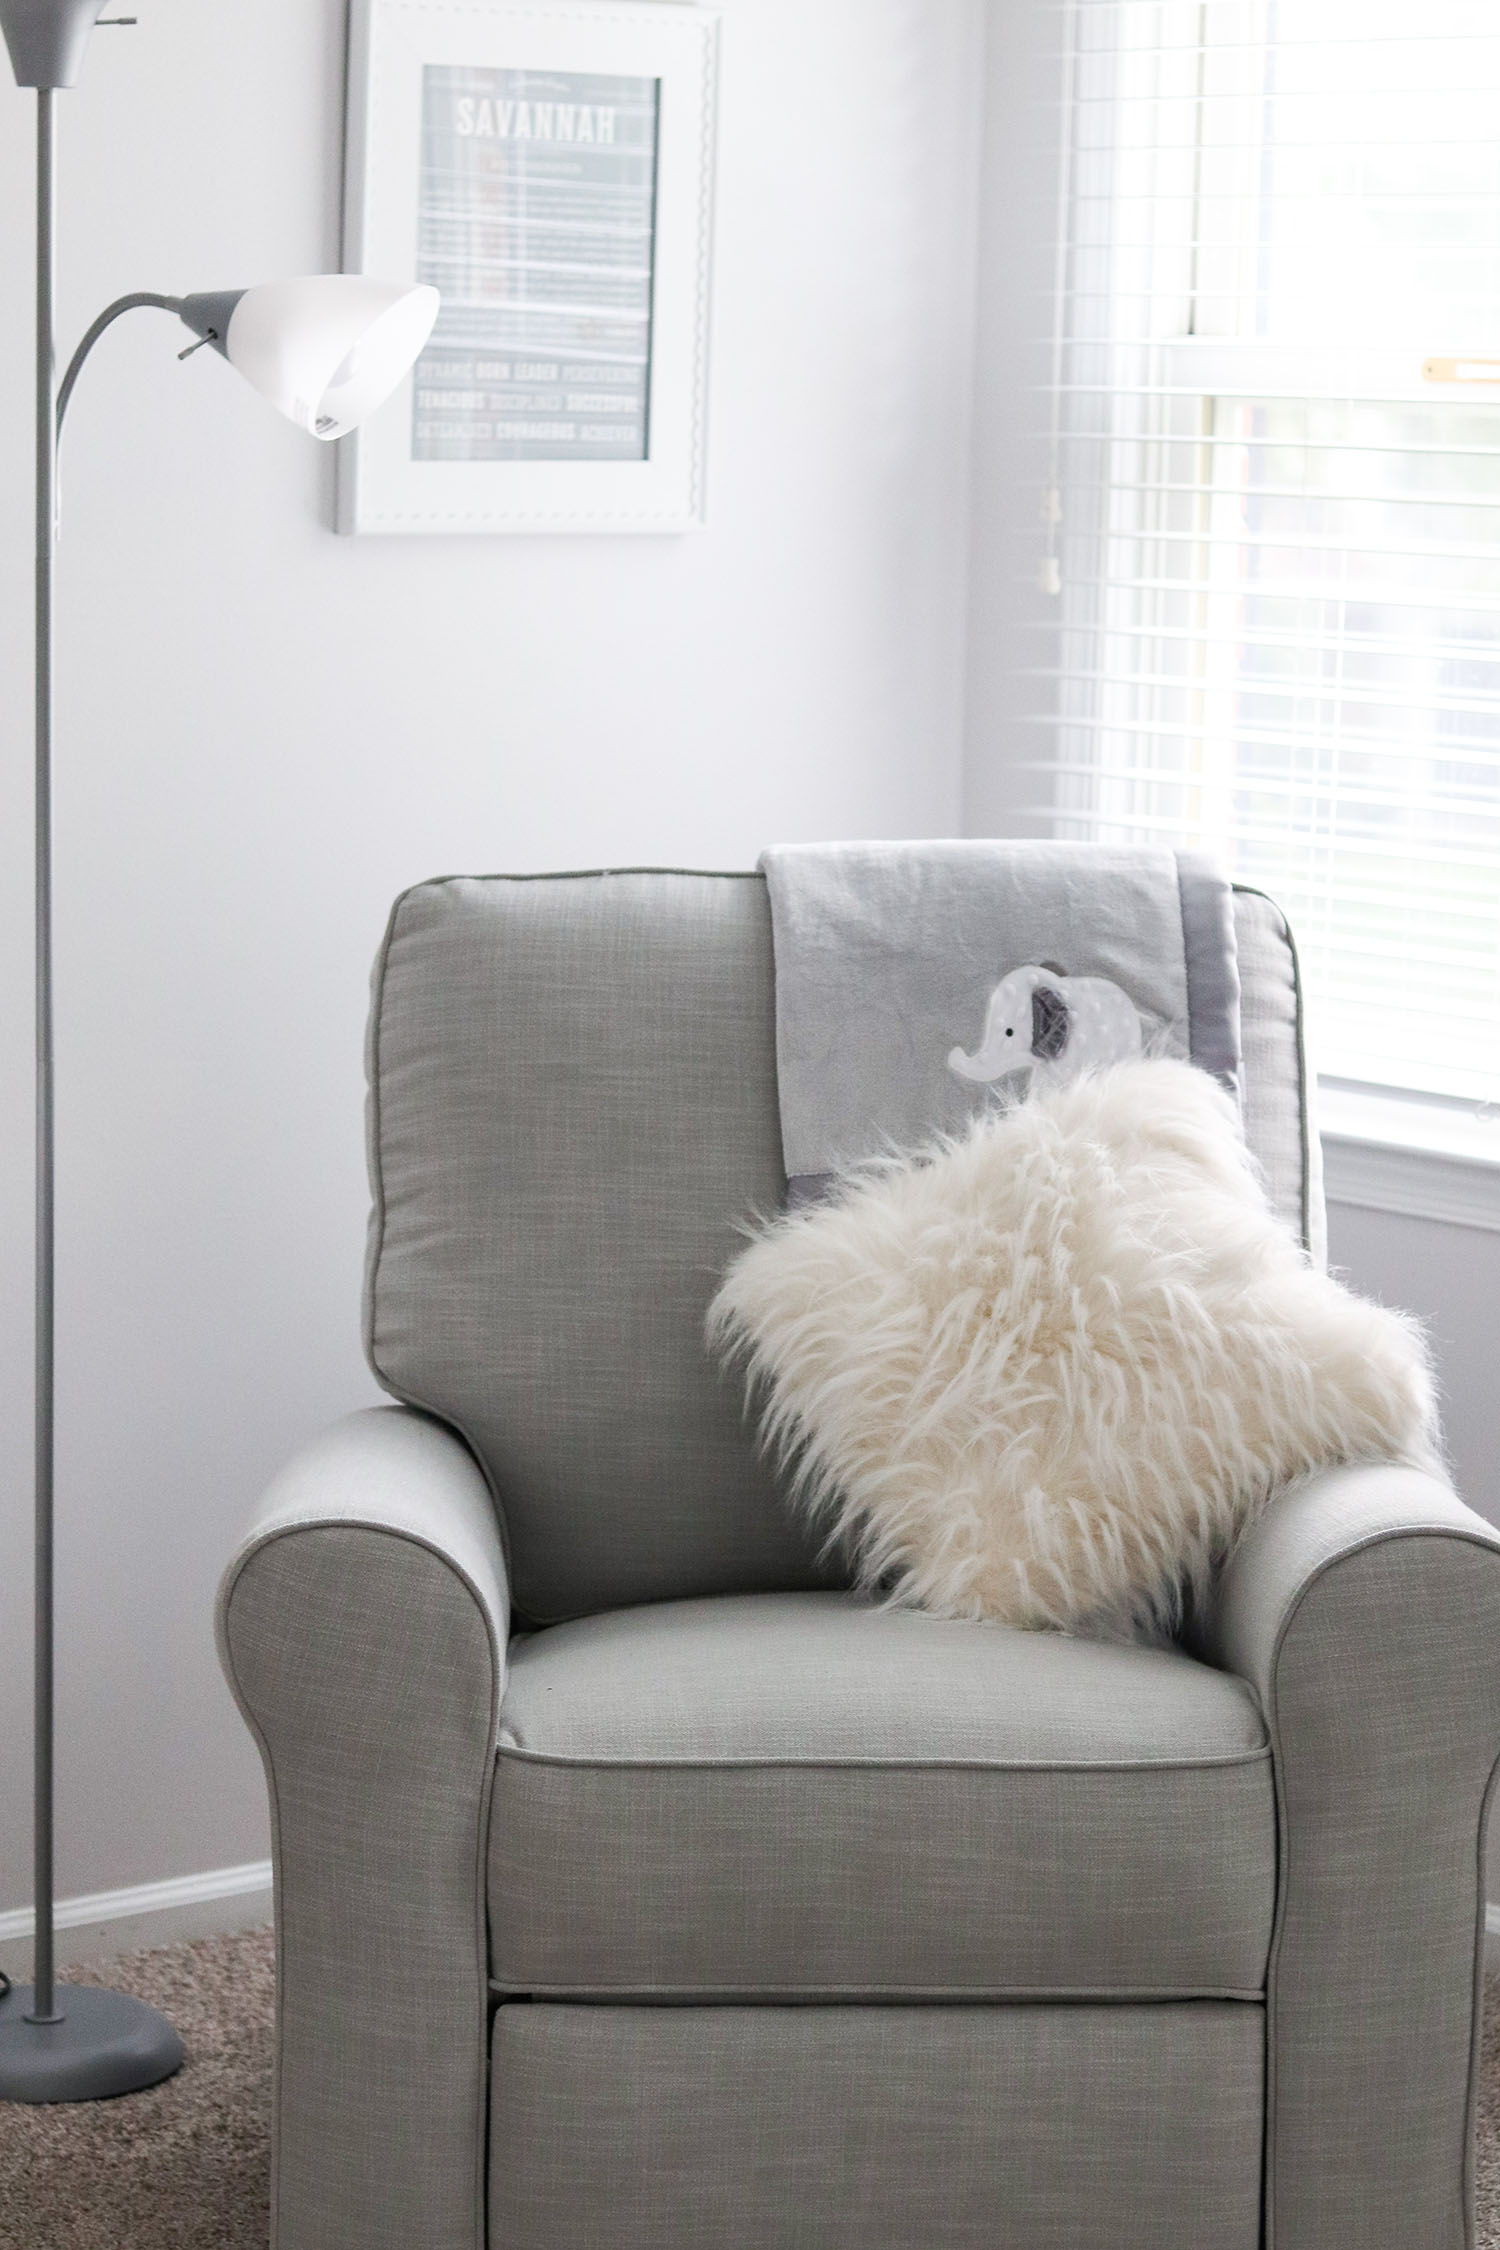 Lavender and Grey Baby Nursery with Elephants Ideas   Pottery Barn Kids Grey Glider Recliner with Elephant Baby Blanket and Fluffy White Pillow